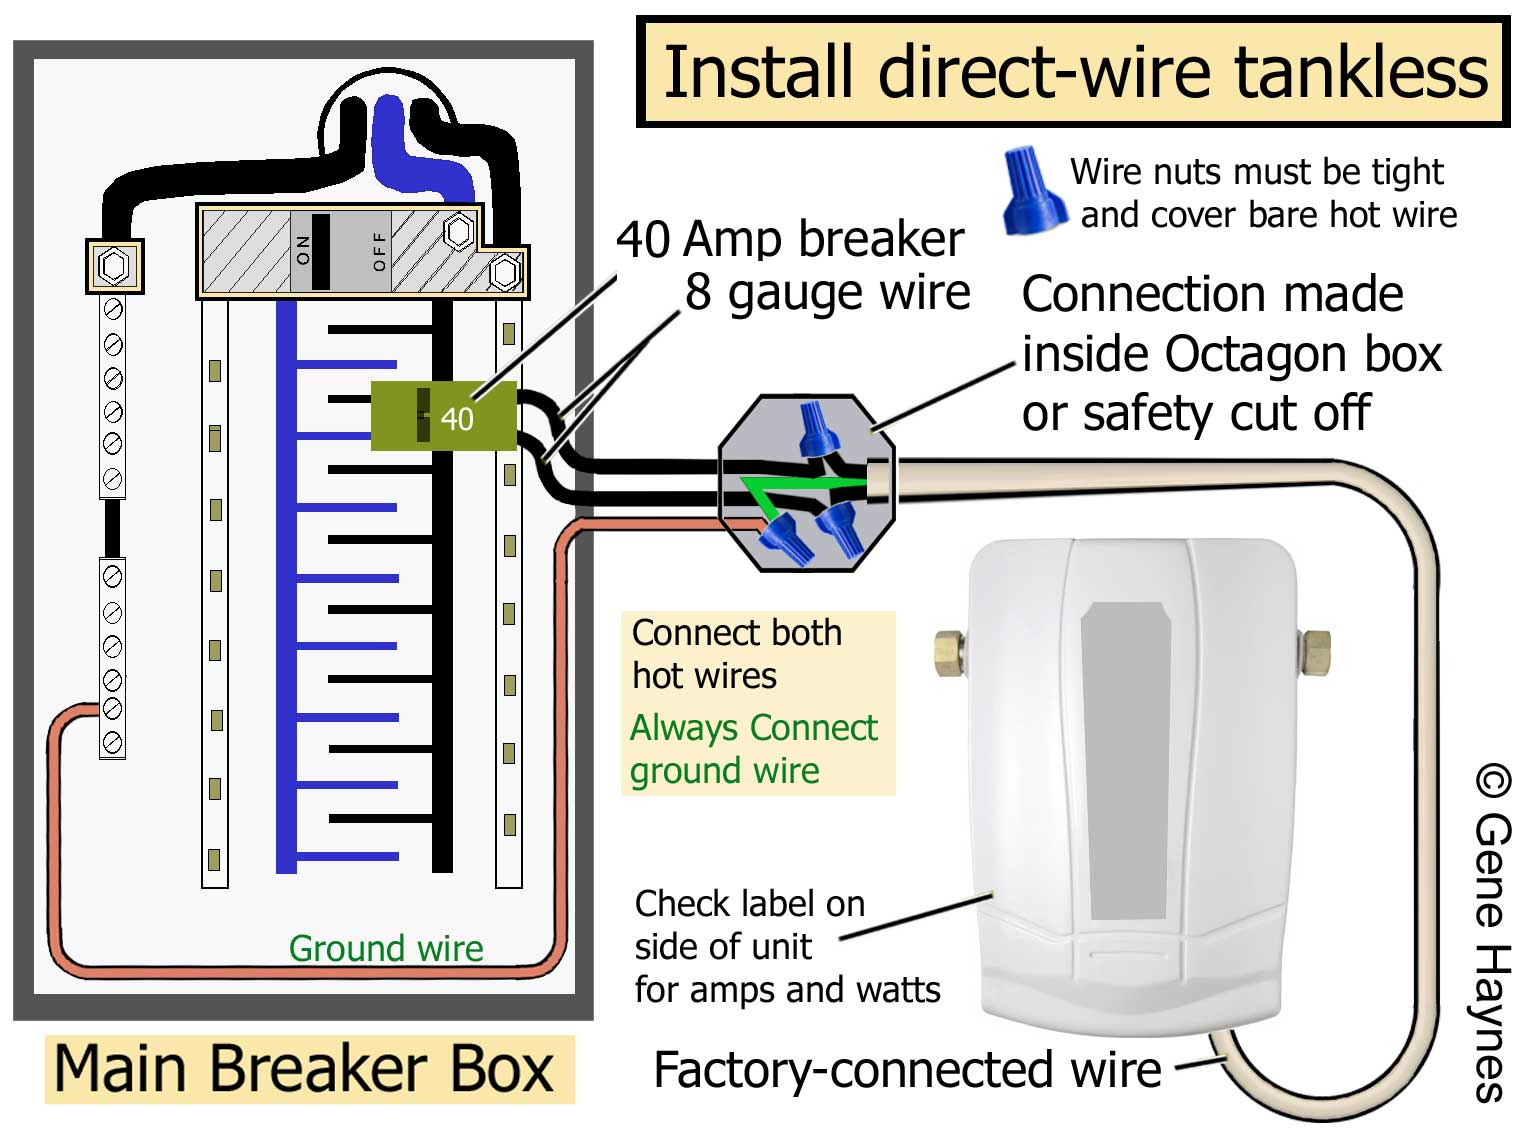 How To Wire Tankless Electric Water Heater Electrical Cord Wiring Diagram Larger Image Factory Connected Or Pigtail Attached Read Rating Plate On Side Of Unit For Amps And Watts